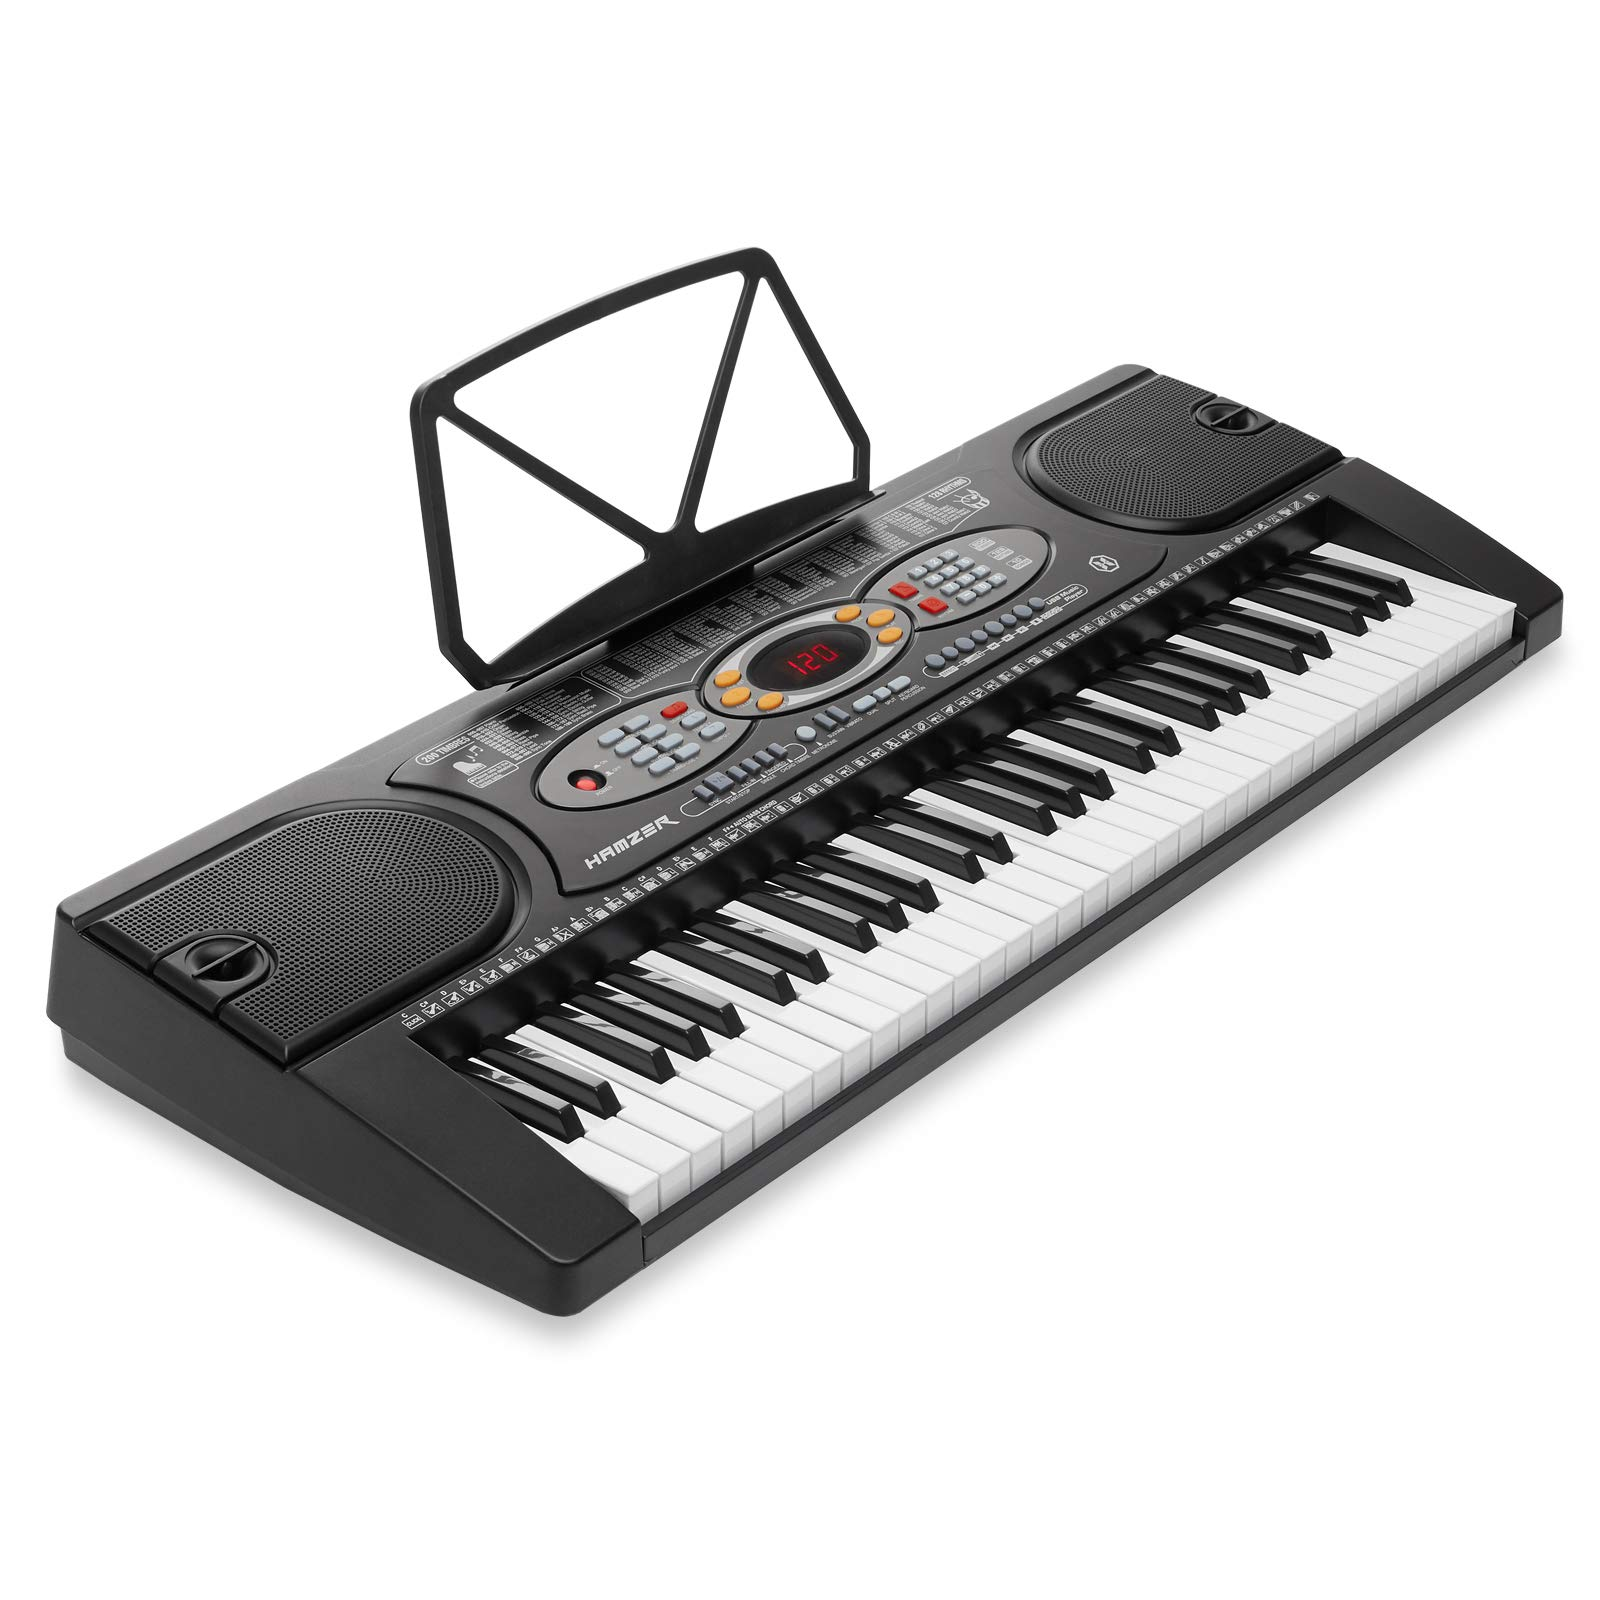 Hamzer 61-Key Electronic Keyboard Portable Digital Music Piano with H Stand, Stool, Headphones Microphone, Sticker Set by Hamzer (Image #3)